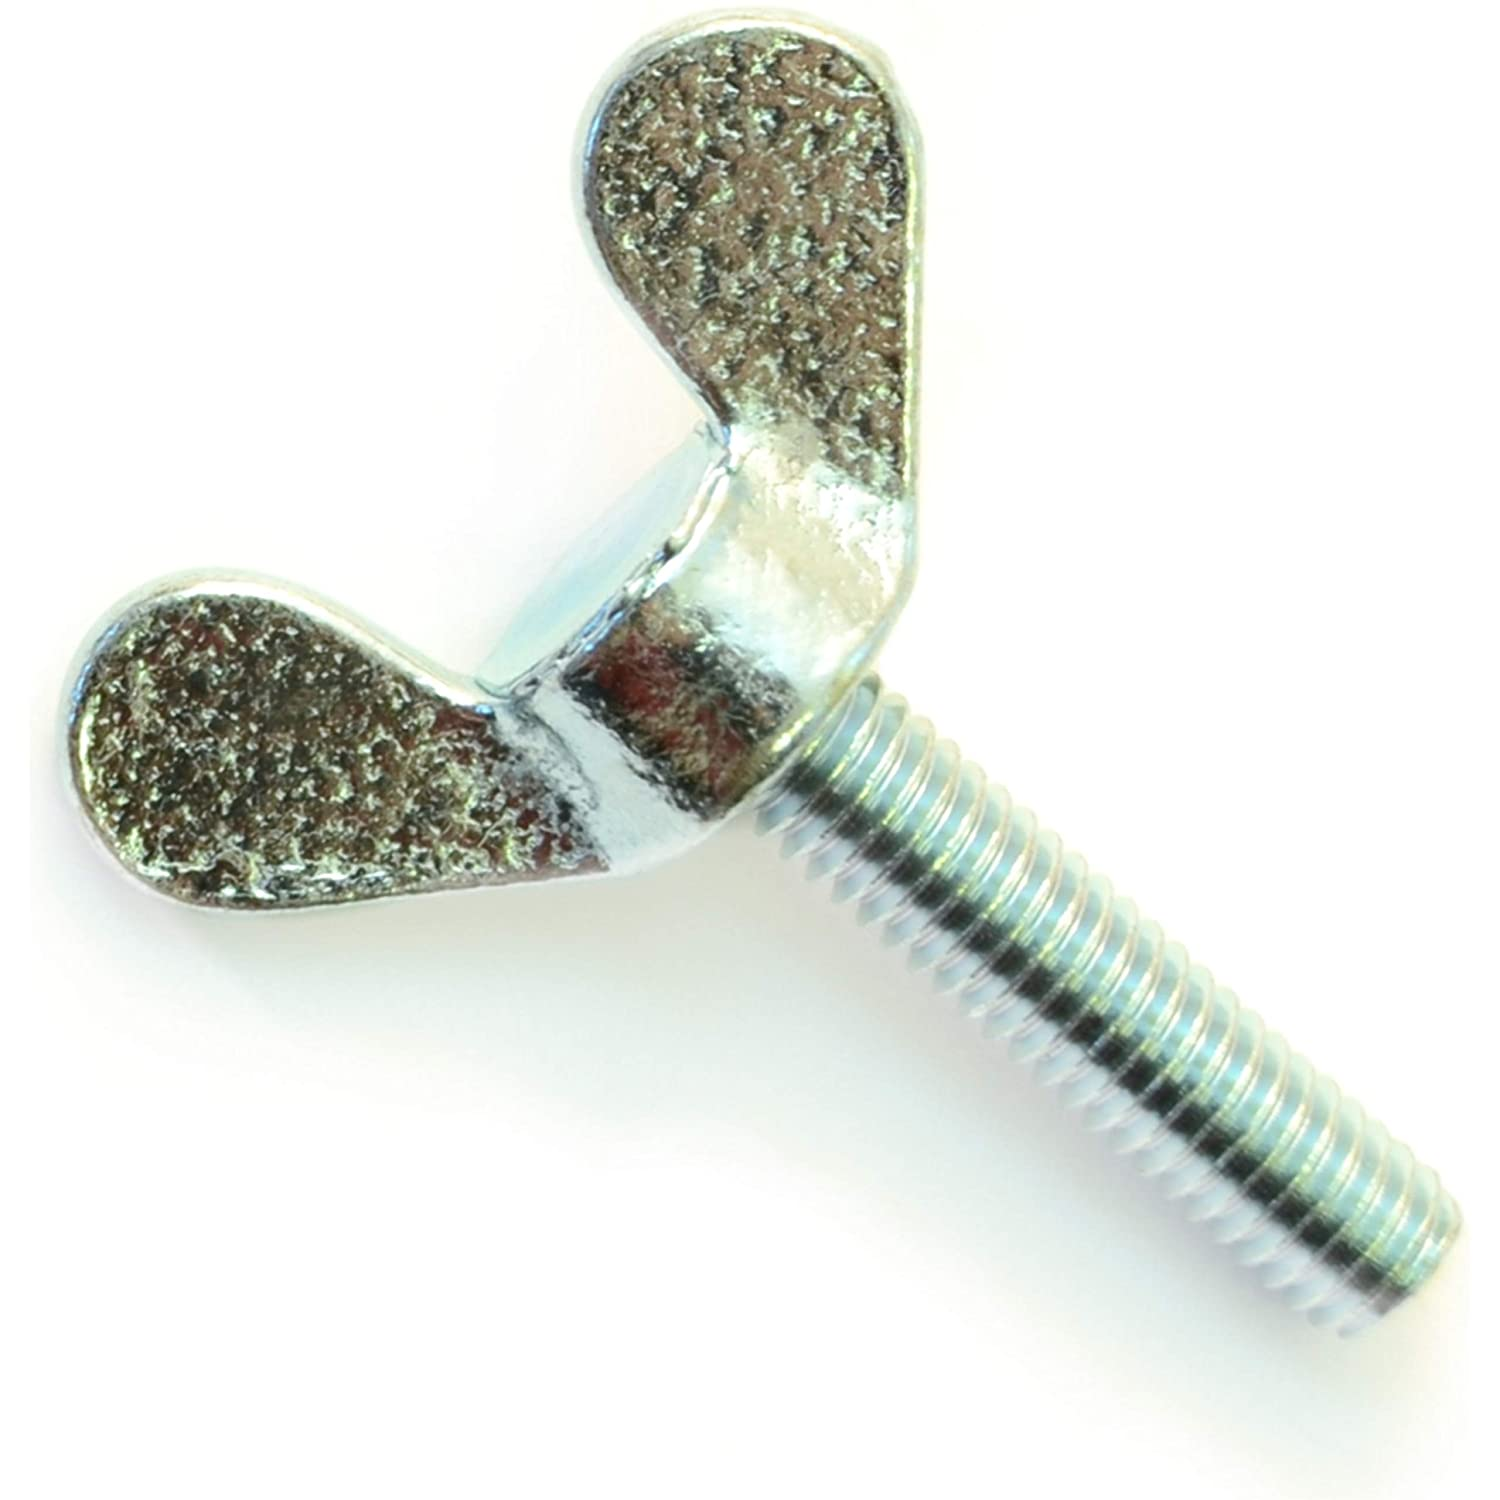 Hard-to-Find Fastener 014973456702 Thumb Screws 6mm-1.00 x 16mm Piece-6 Midwest Fastener Corp